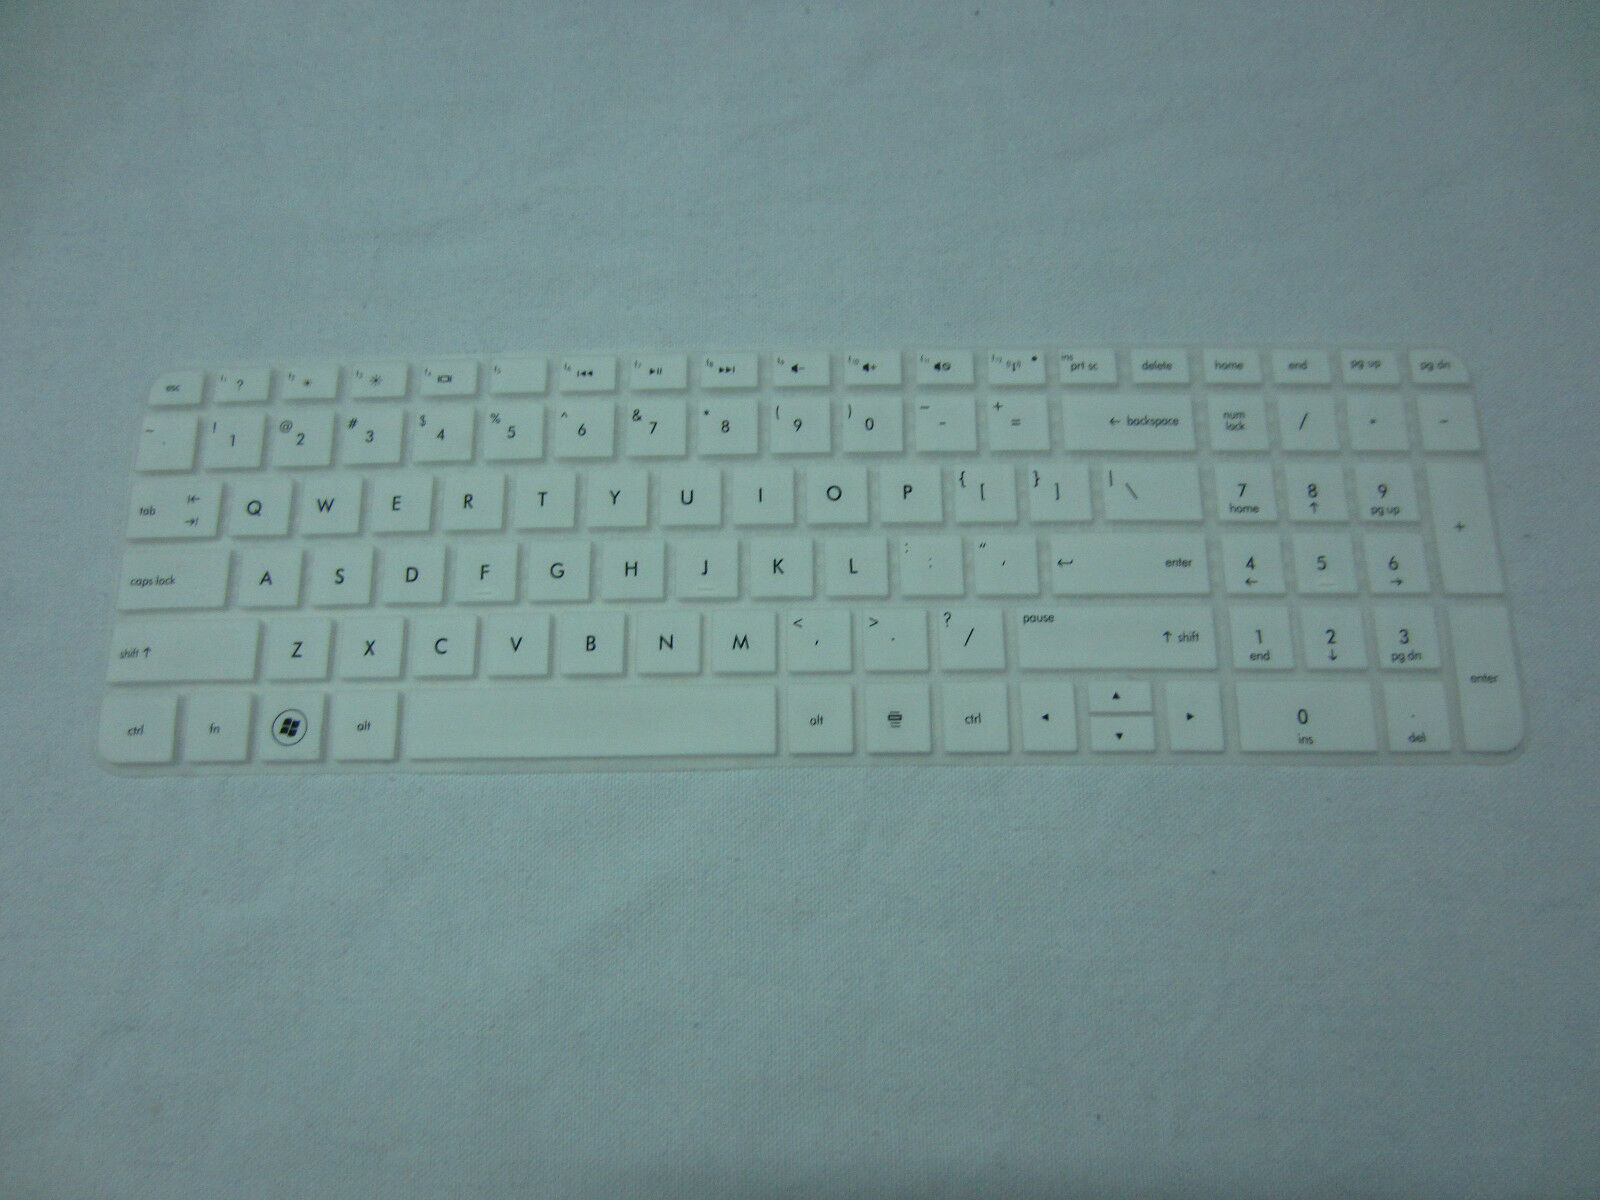 keyboard skin protector for HP Pavilion dv6 dv6t G6 G6t G6z with number pad